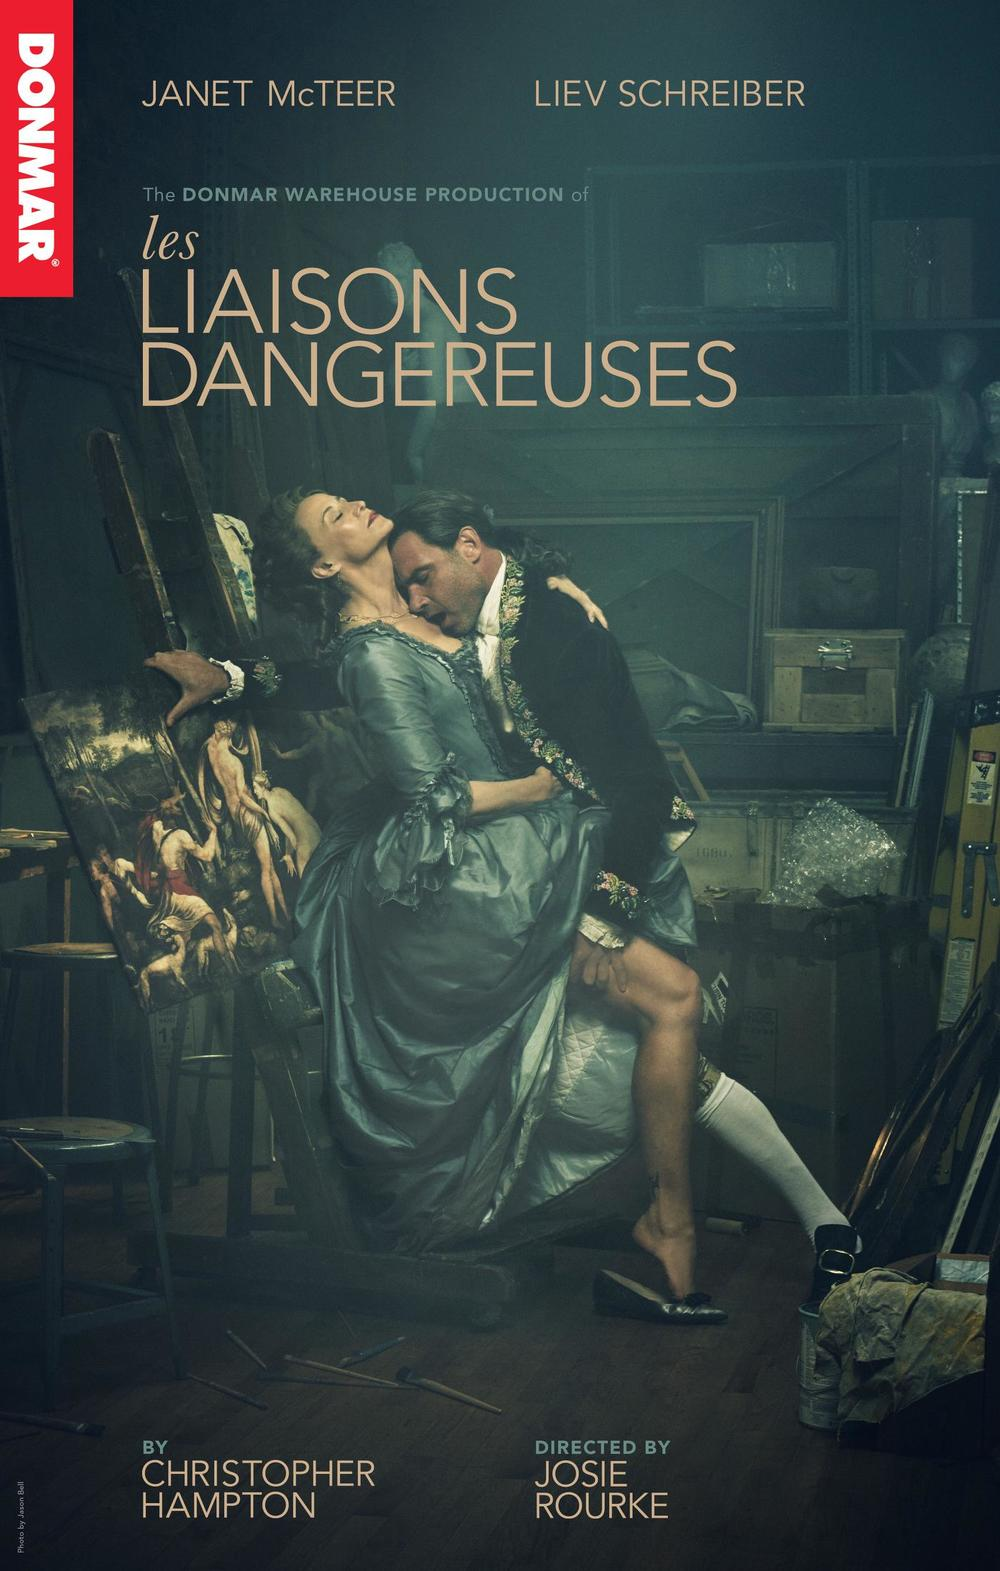 Title treatment, key-art design and execution for the 2016 revival of Les Liaisons Dangereuses starring Janet McTeer and Liev Schreiber.  Creative Direction: Vinny Sainato, Tom Callahan Photographer: Jason Bell